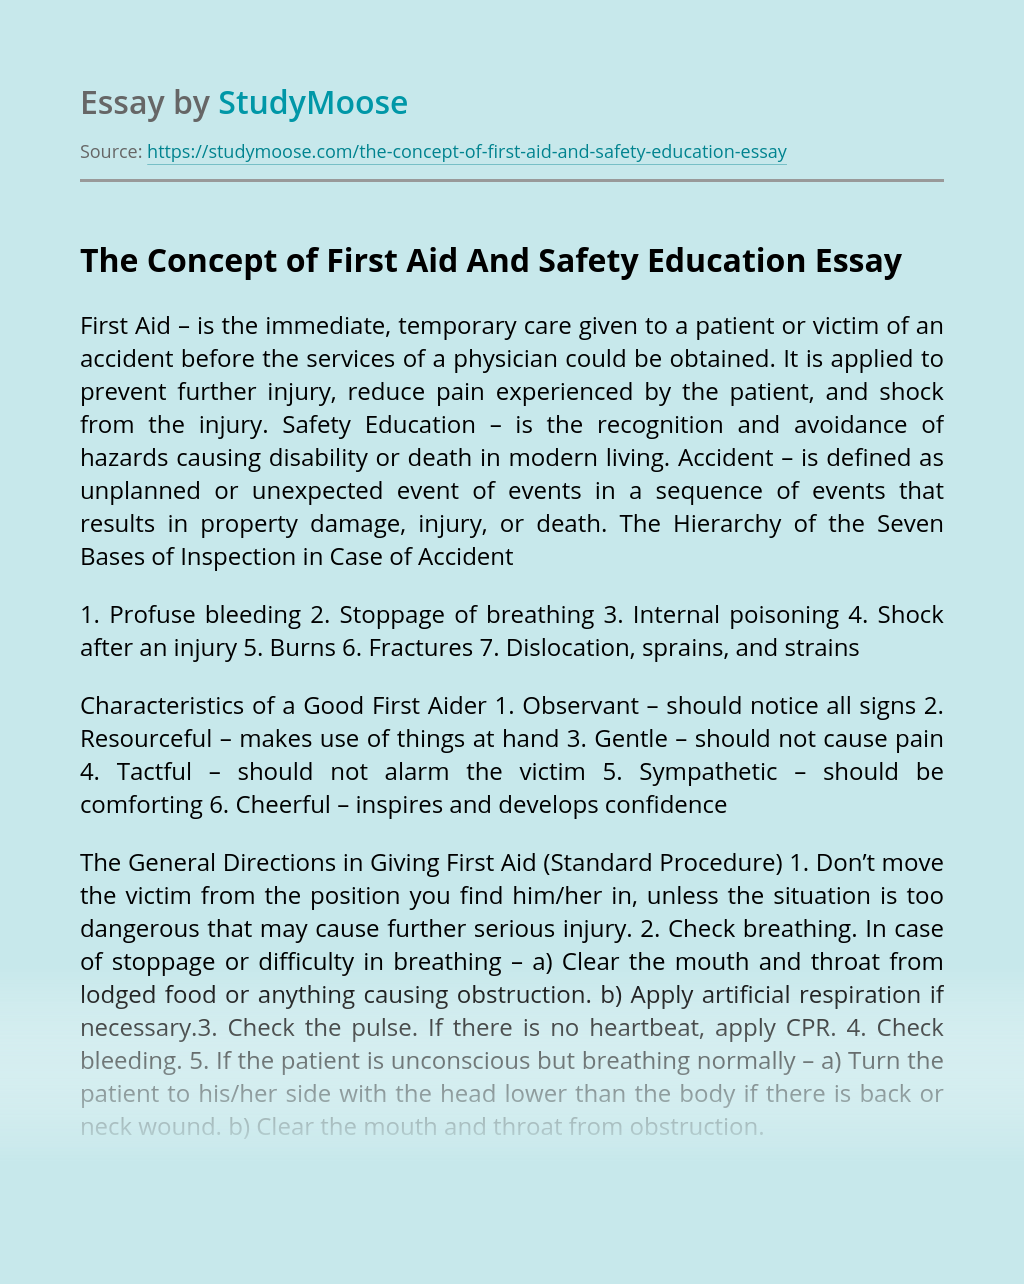 The Concept of First Aid And Safety Education